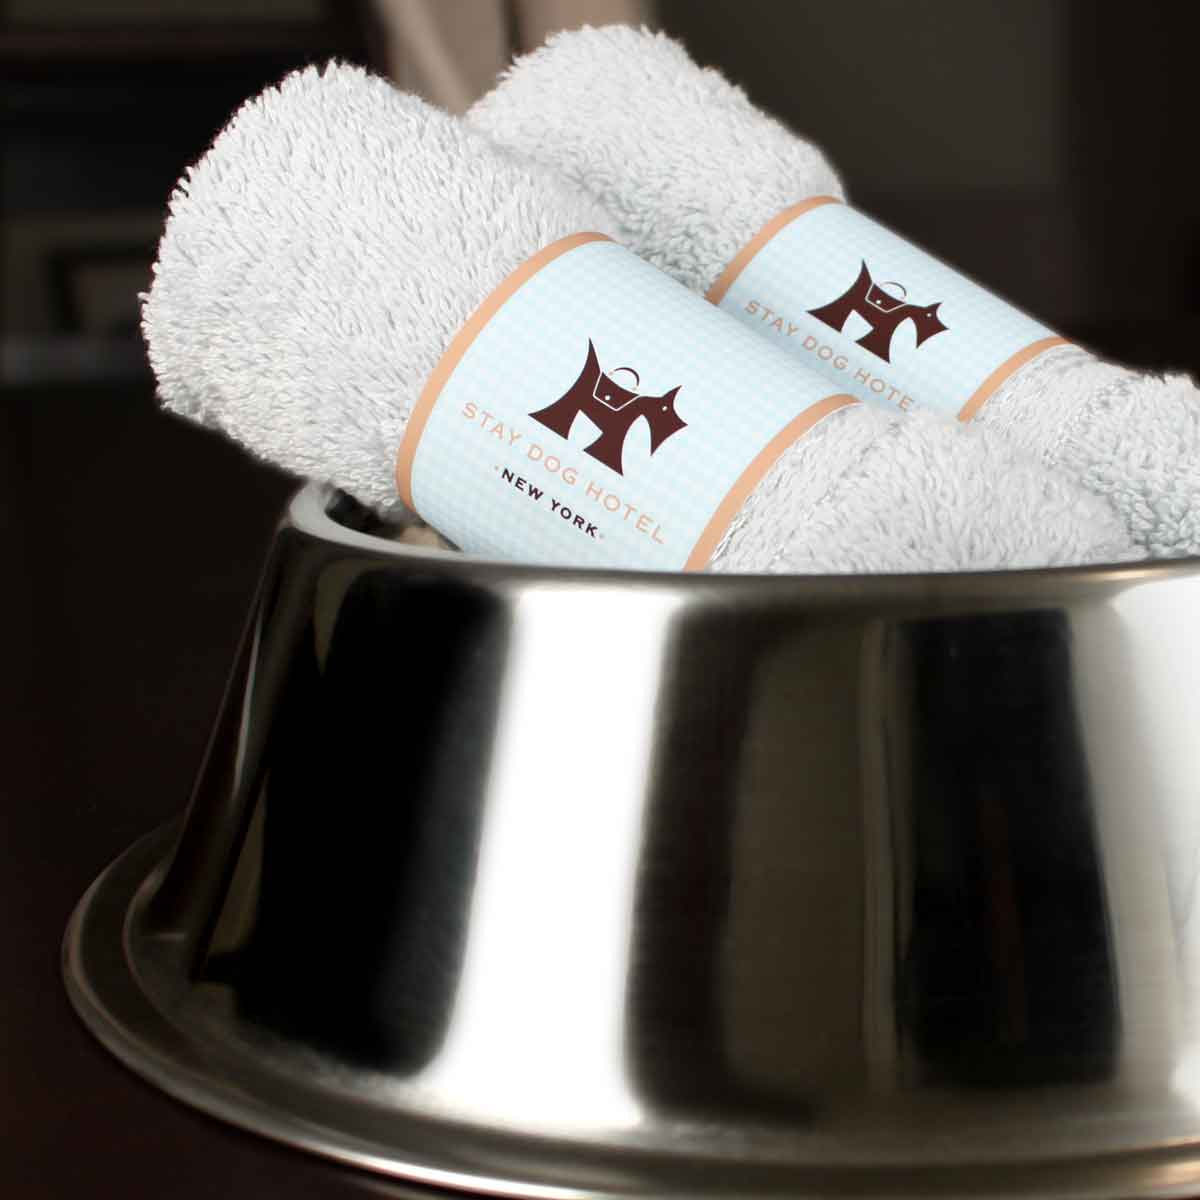 Branded towels in dog bowl